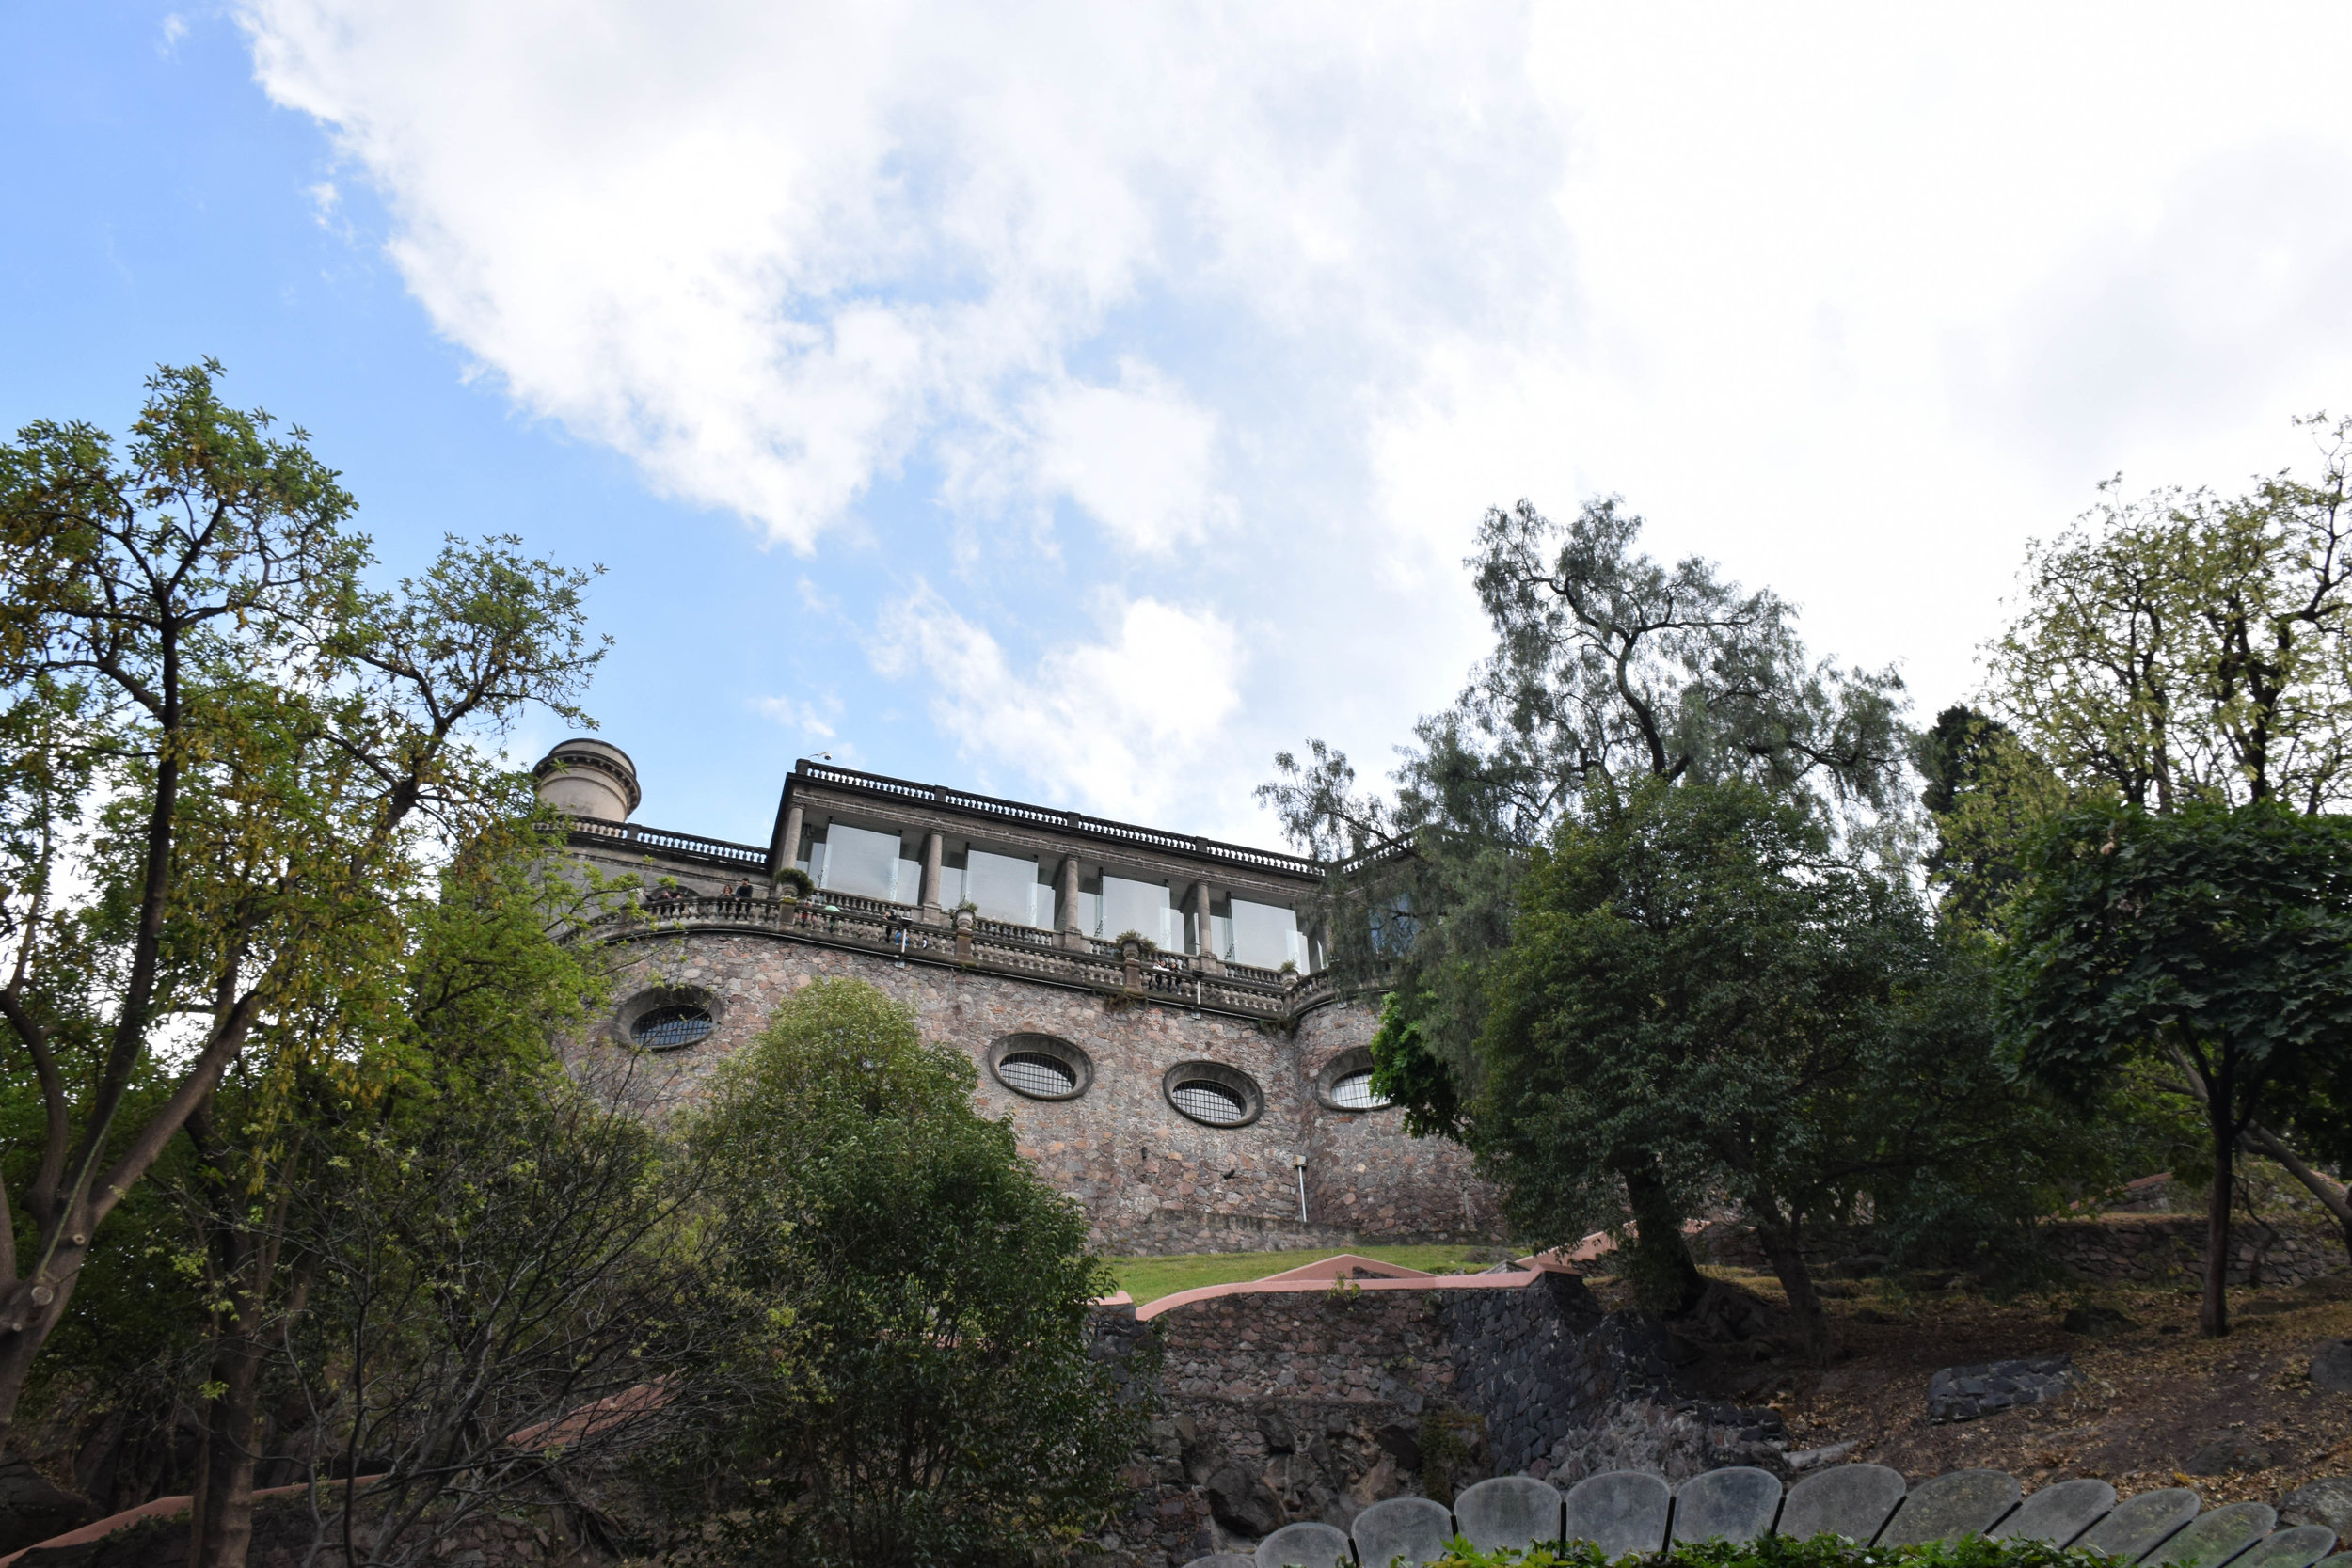 The other jewel of the park is the Castle, El Castillo de Chapultepec. We tried to go here after the museum, but it closed at five. No matter, we went later. More to come on this.